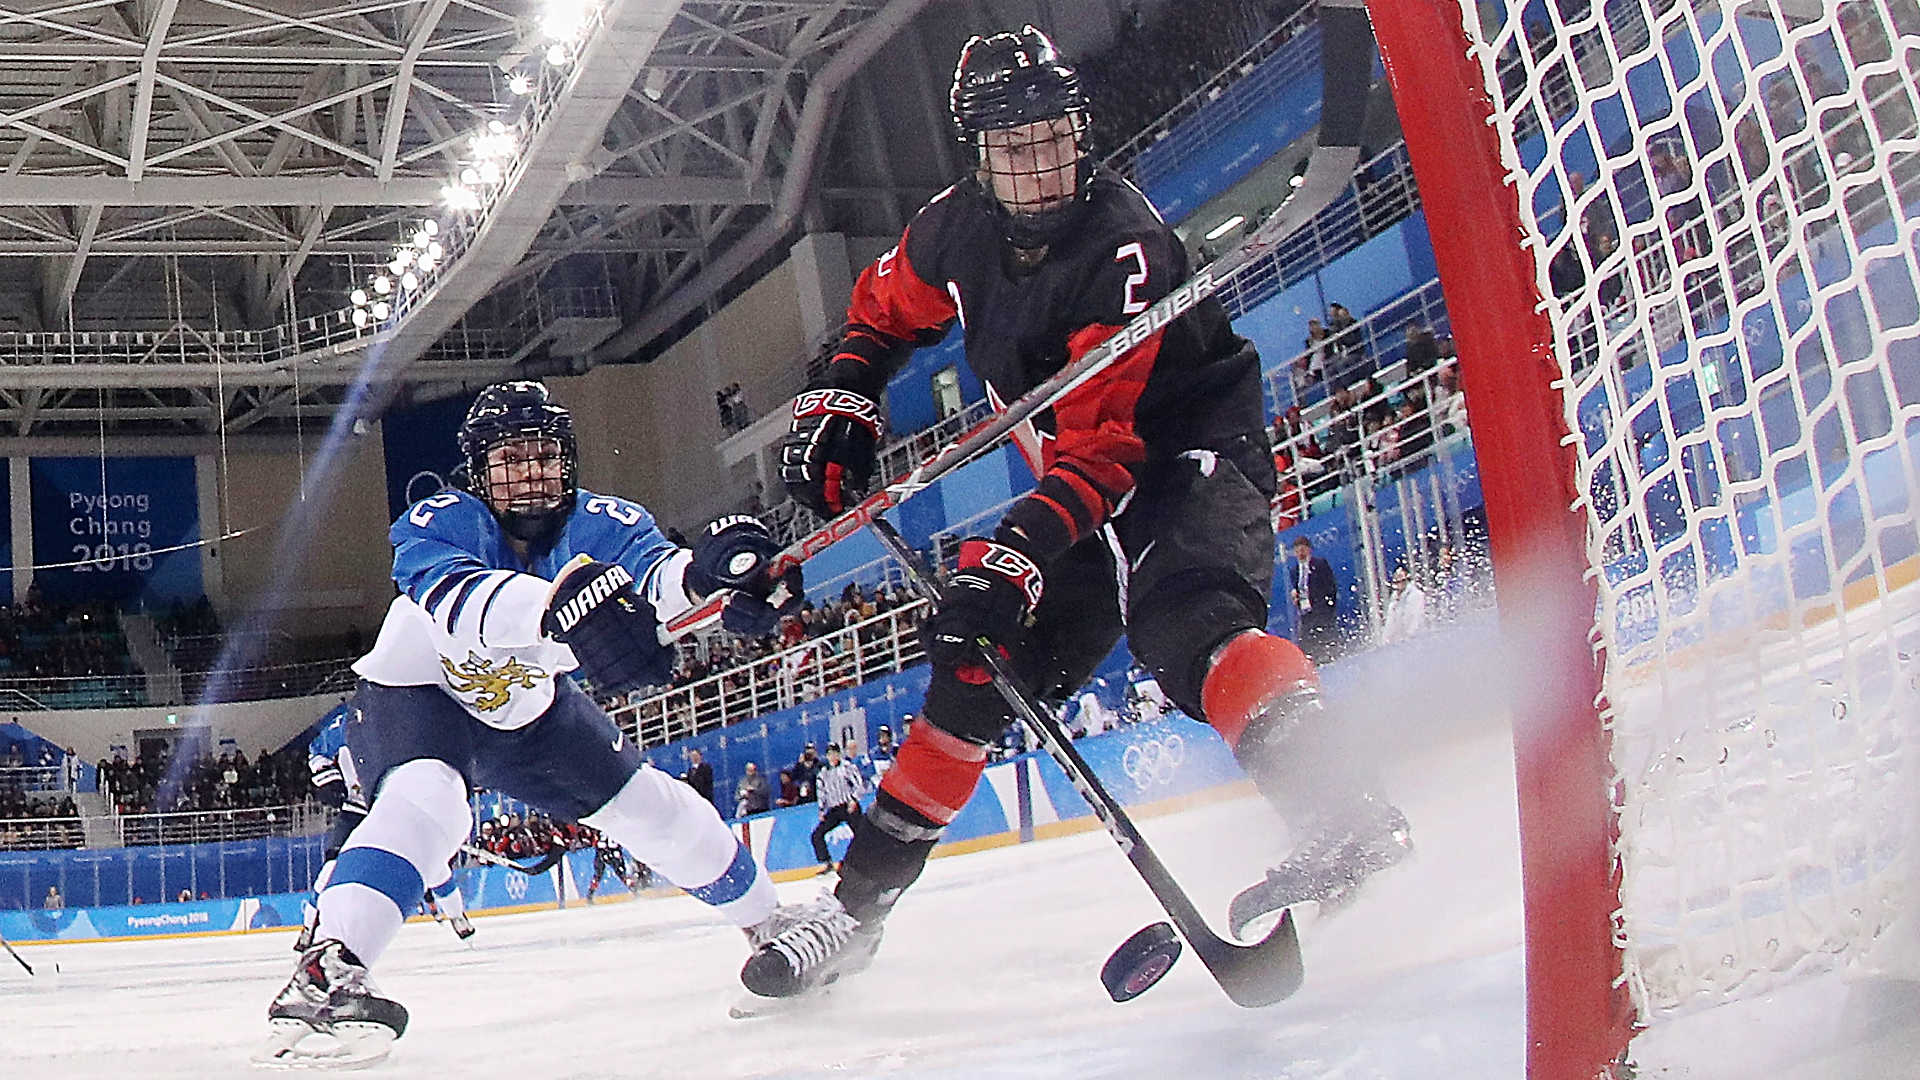 Team Canada beats Finland in women's hockey at 2018 Winter Olympics